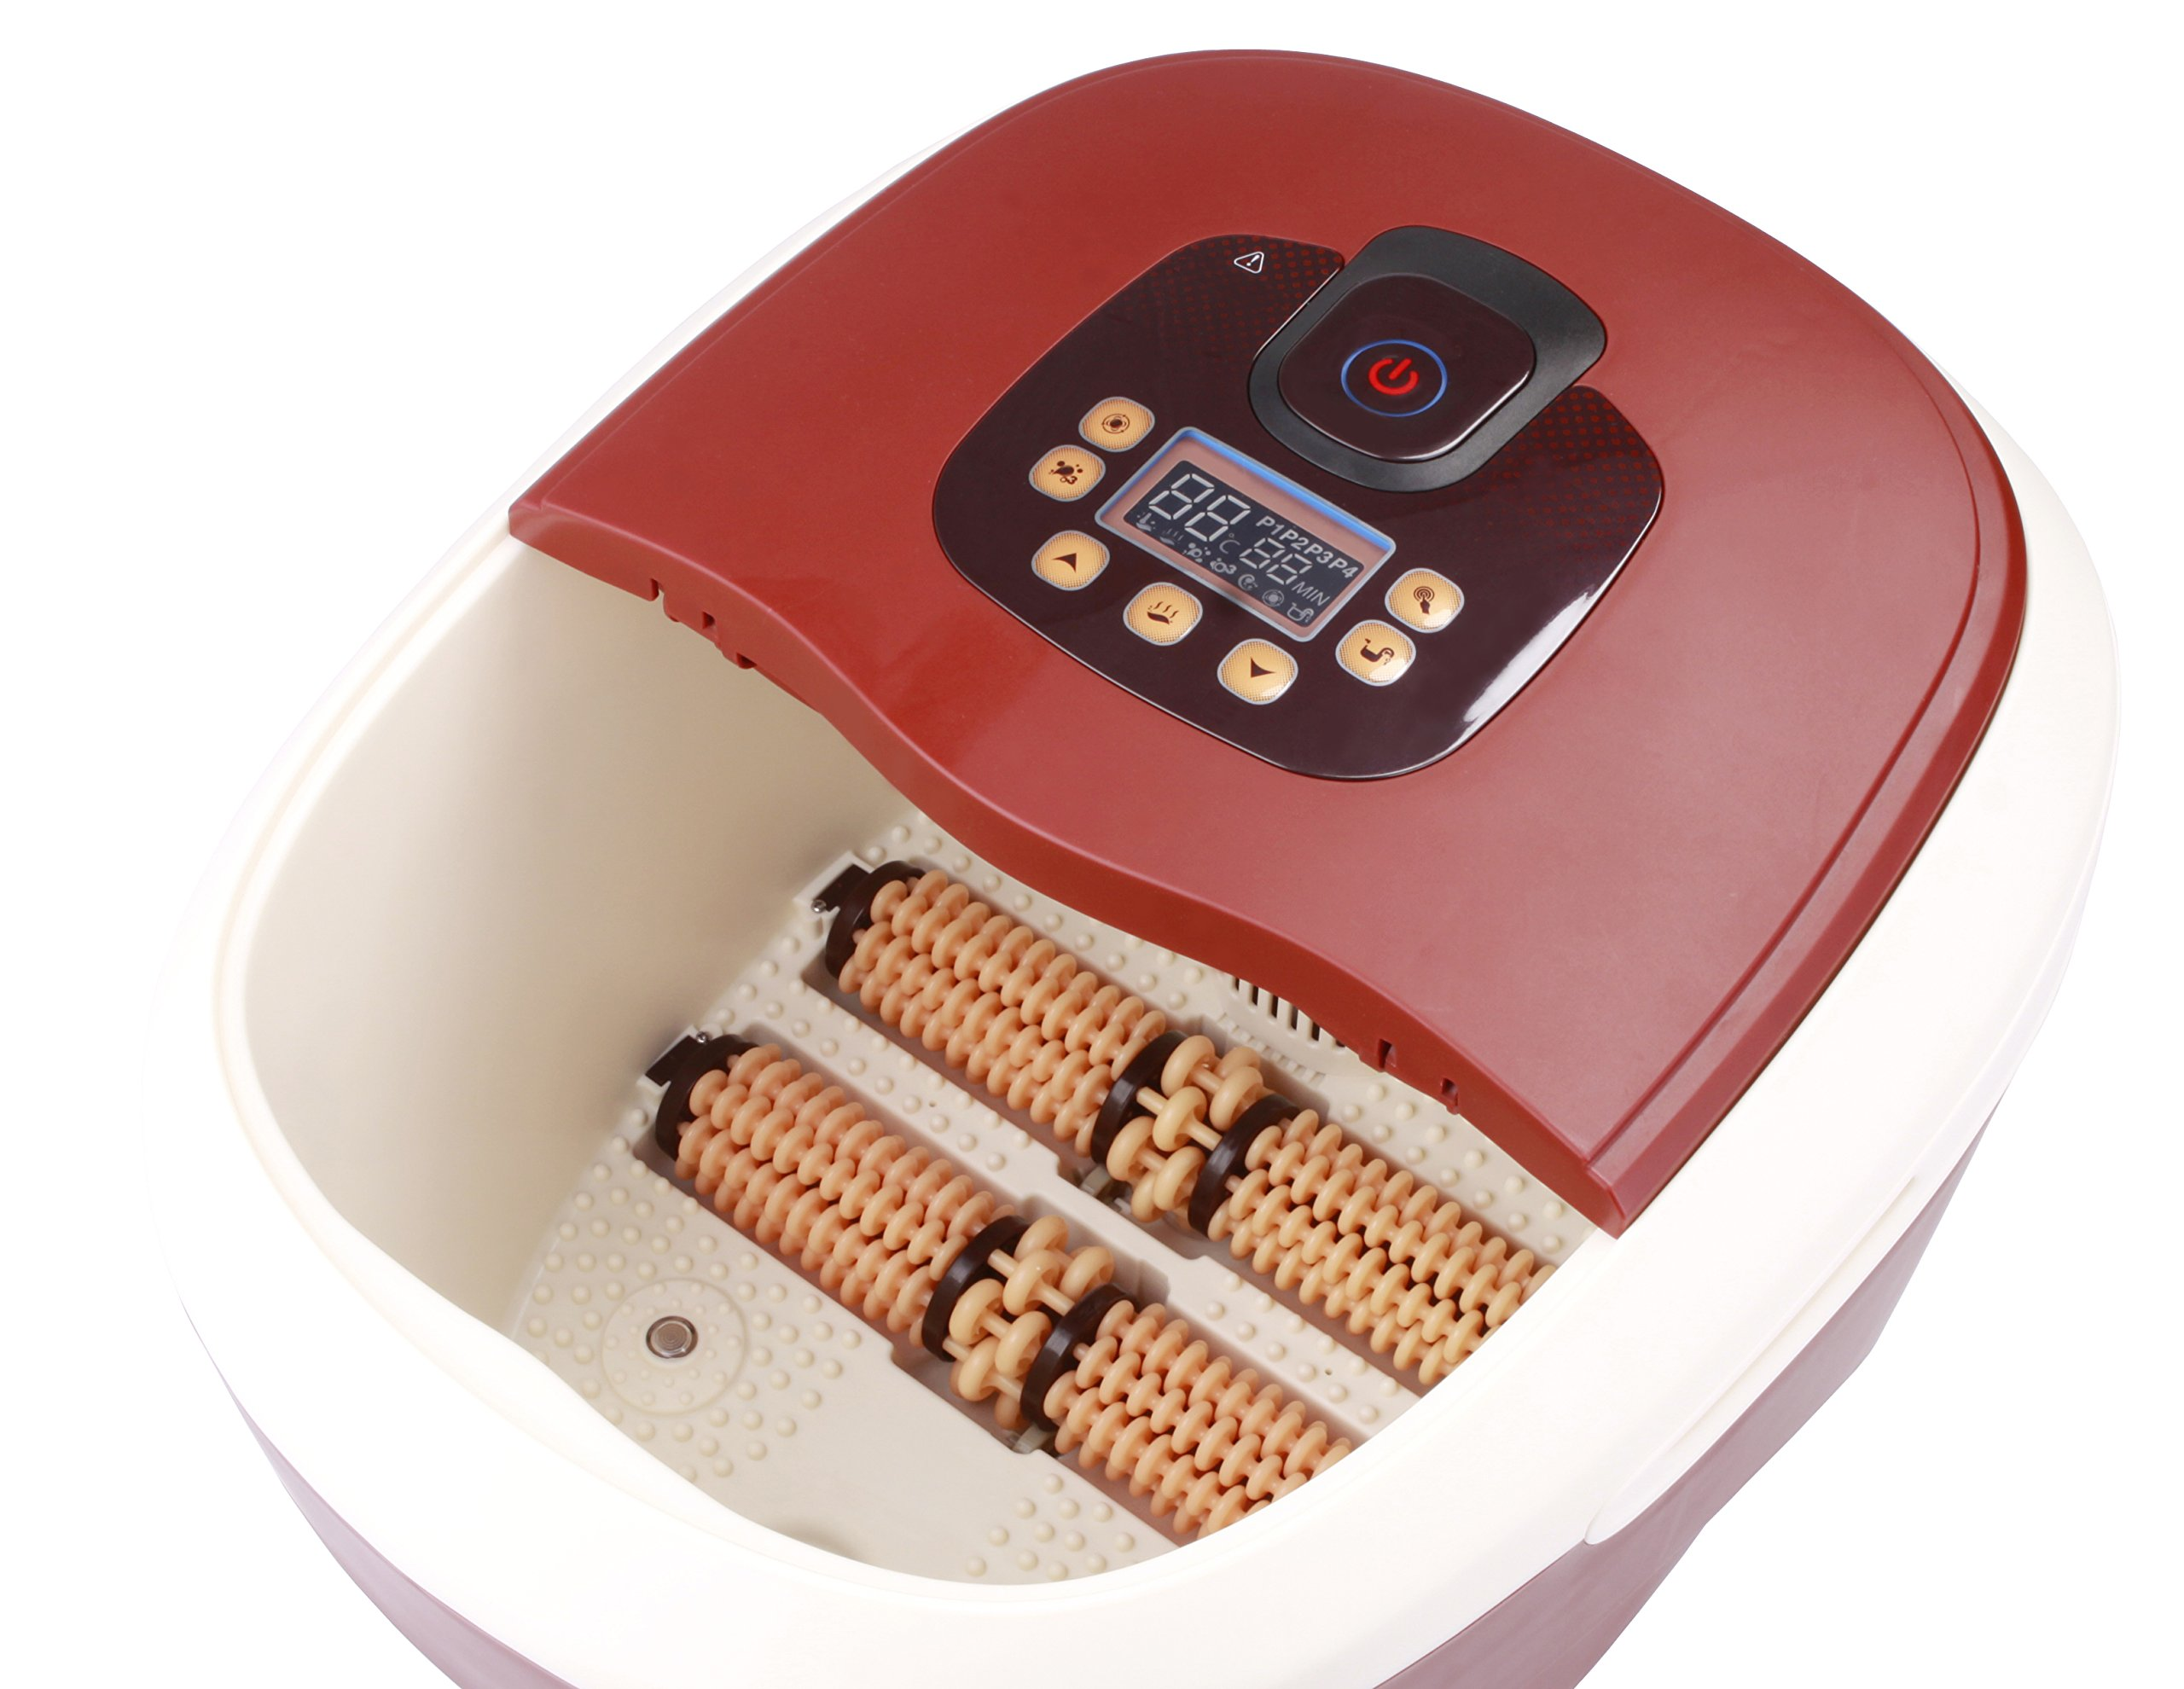 Carepeutic Ozone Waterfall Foot and Leg Spa Bath Massager, 20 Pound by Carepeutic (Image #3)